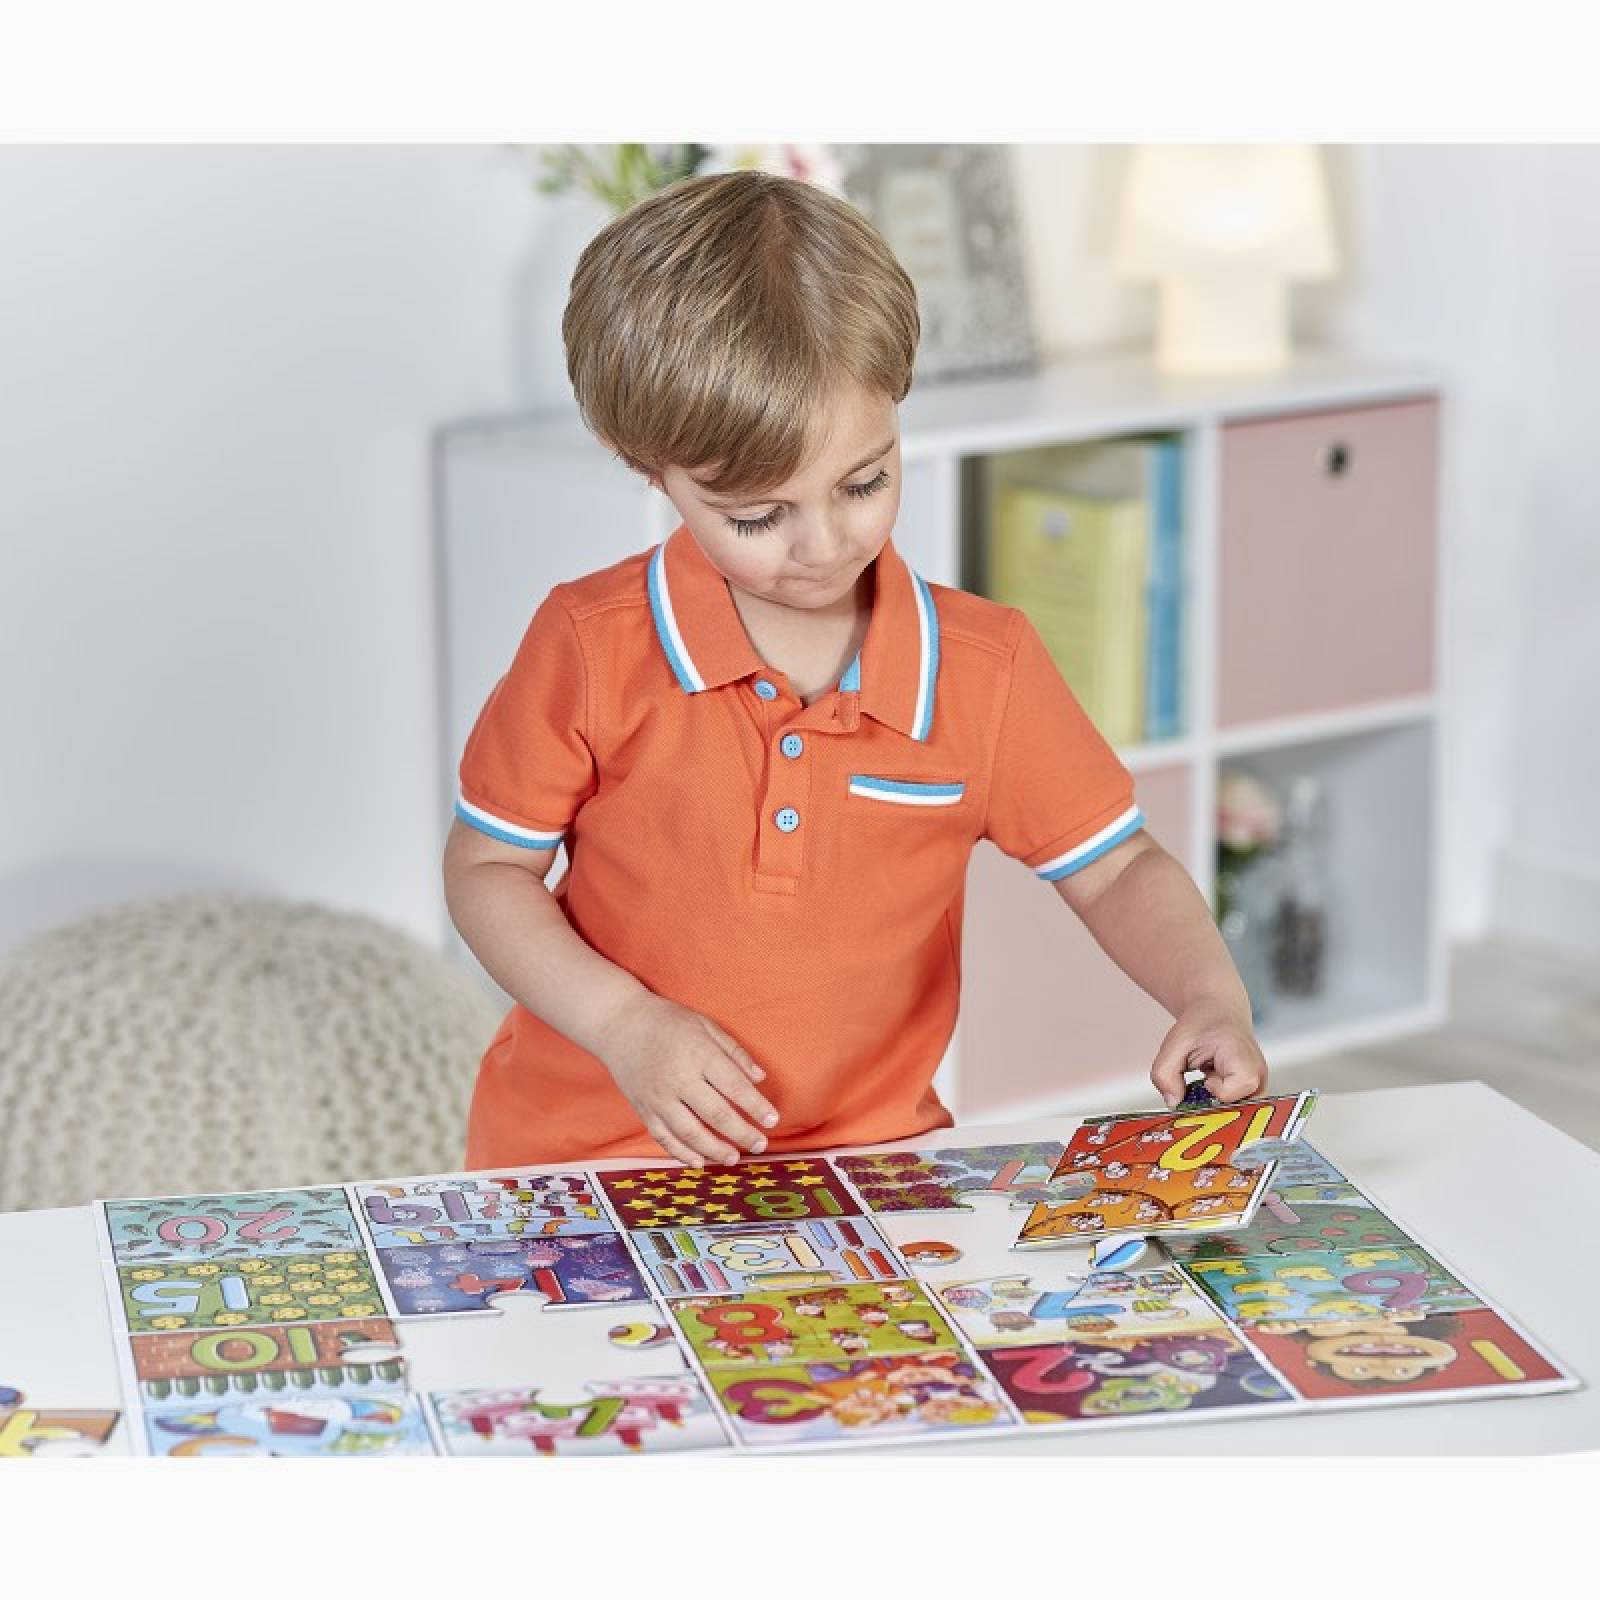 Big Number - 20 Piece Jigsaw Puzzle By Orchard Toys 3+ thumbnails